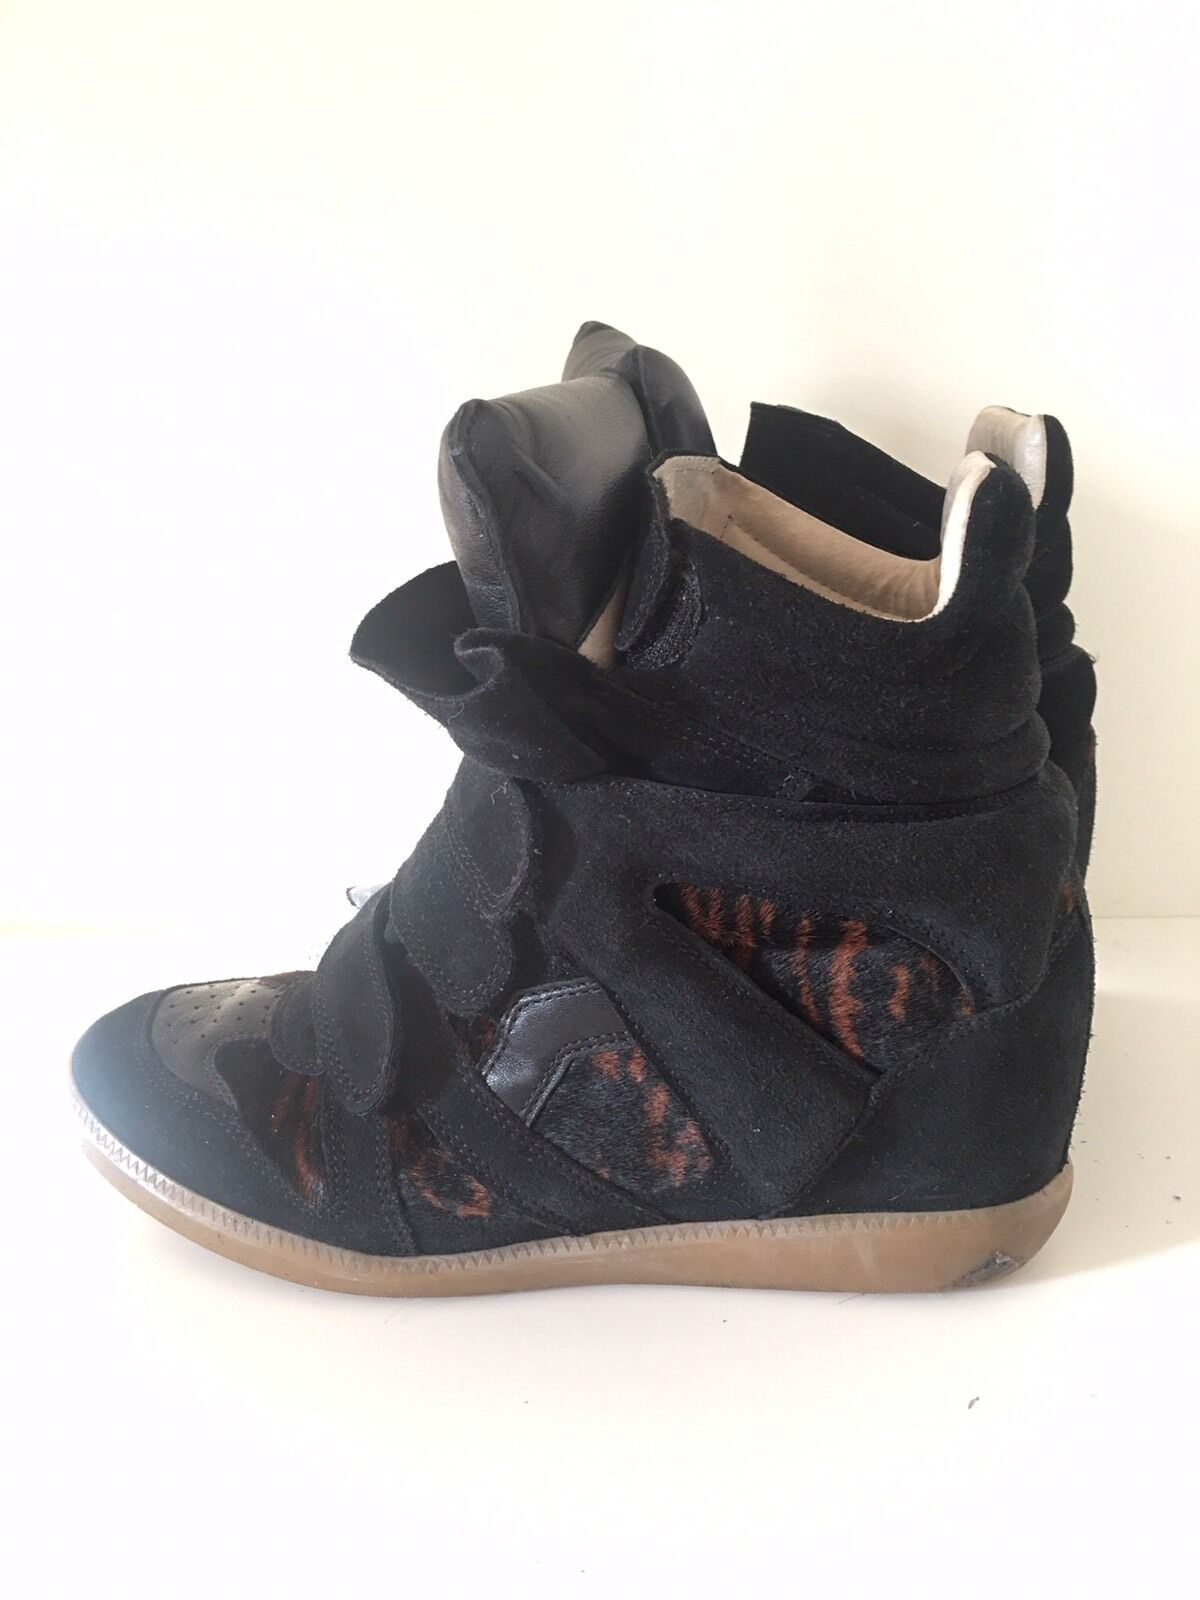 Isabel Marant Admits The Sneaker Wedge Is Over See Her New SleekerStyle Isabel Marant Admits The Sneaker Wedge Is Over See Her New SleekerStyle new picture